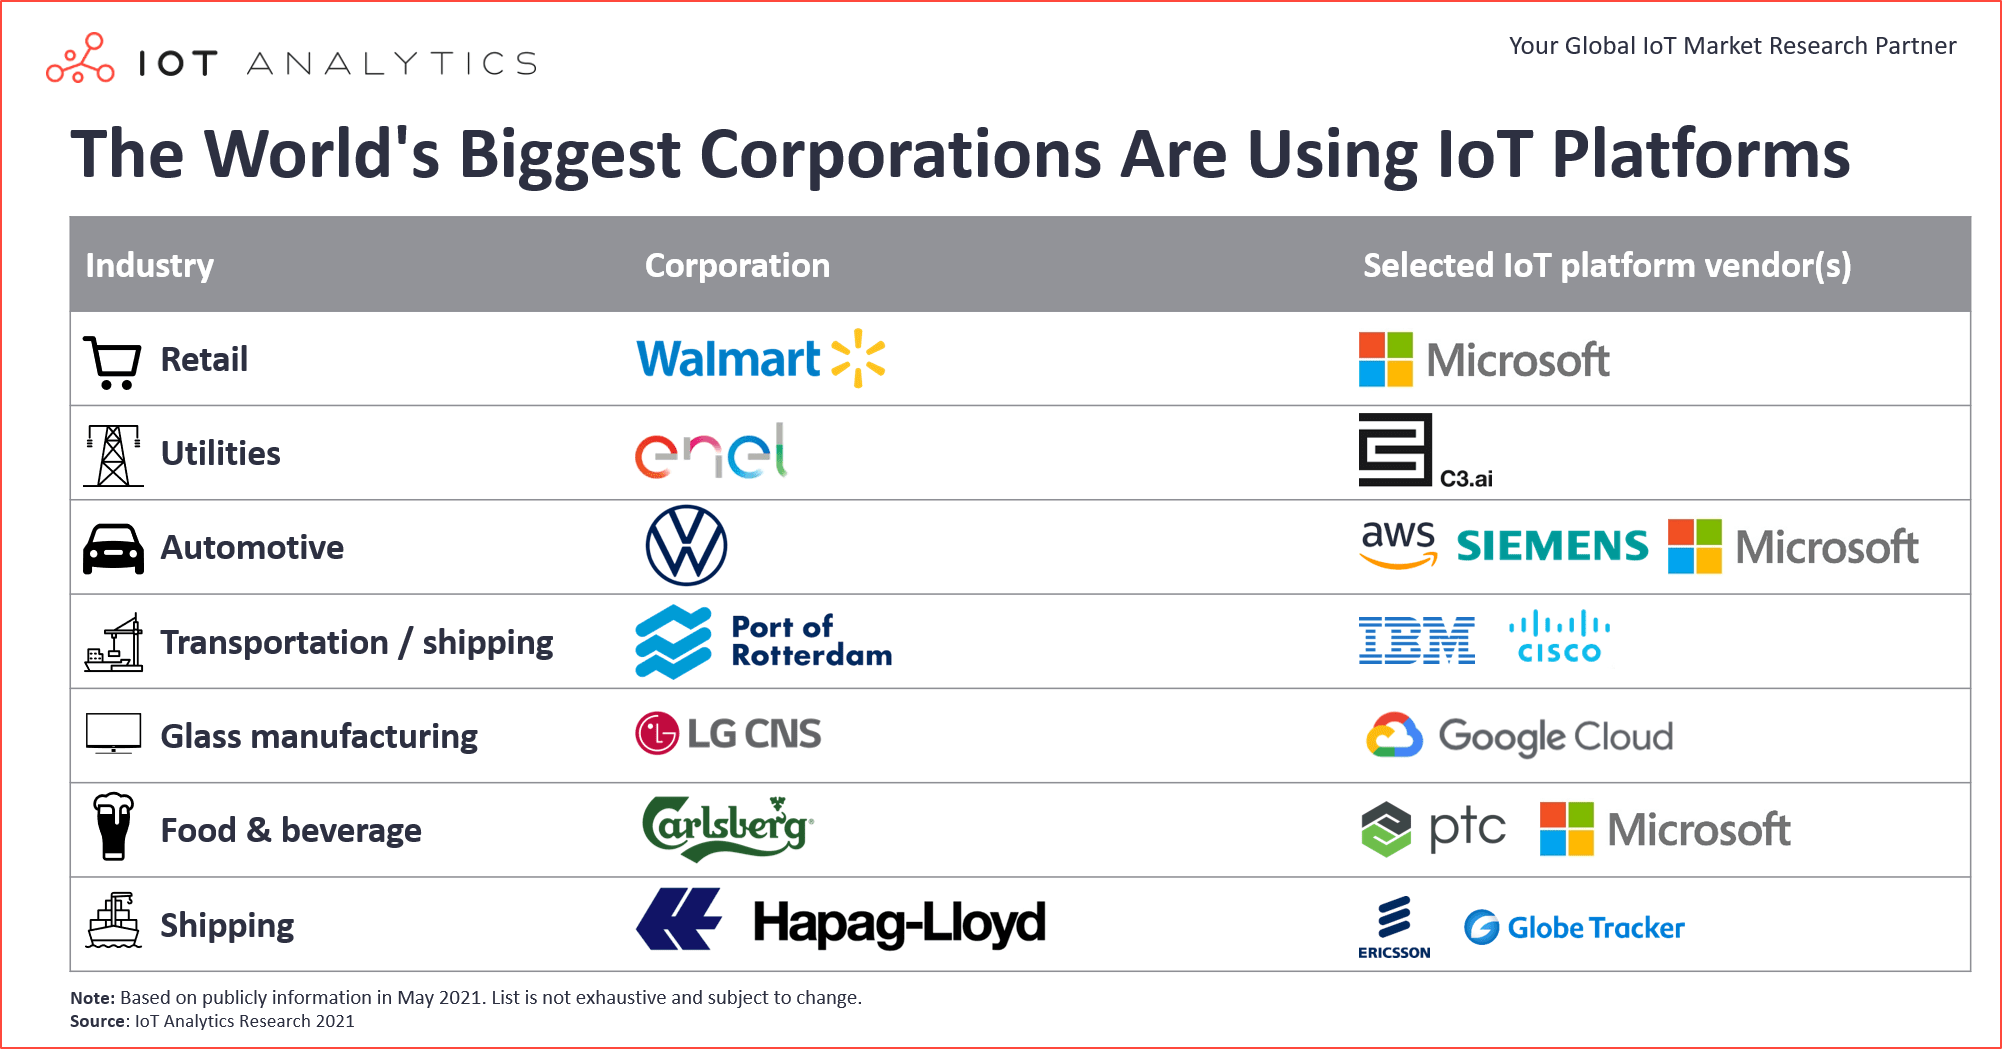 The World's Biggest Corporations Are Using IoT Platforms